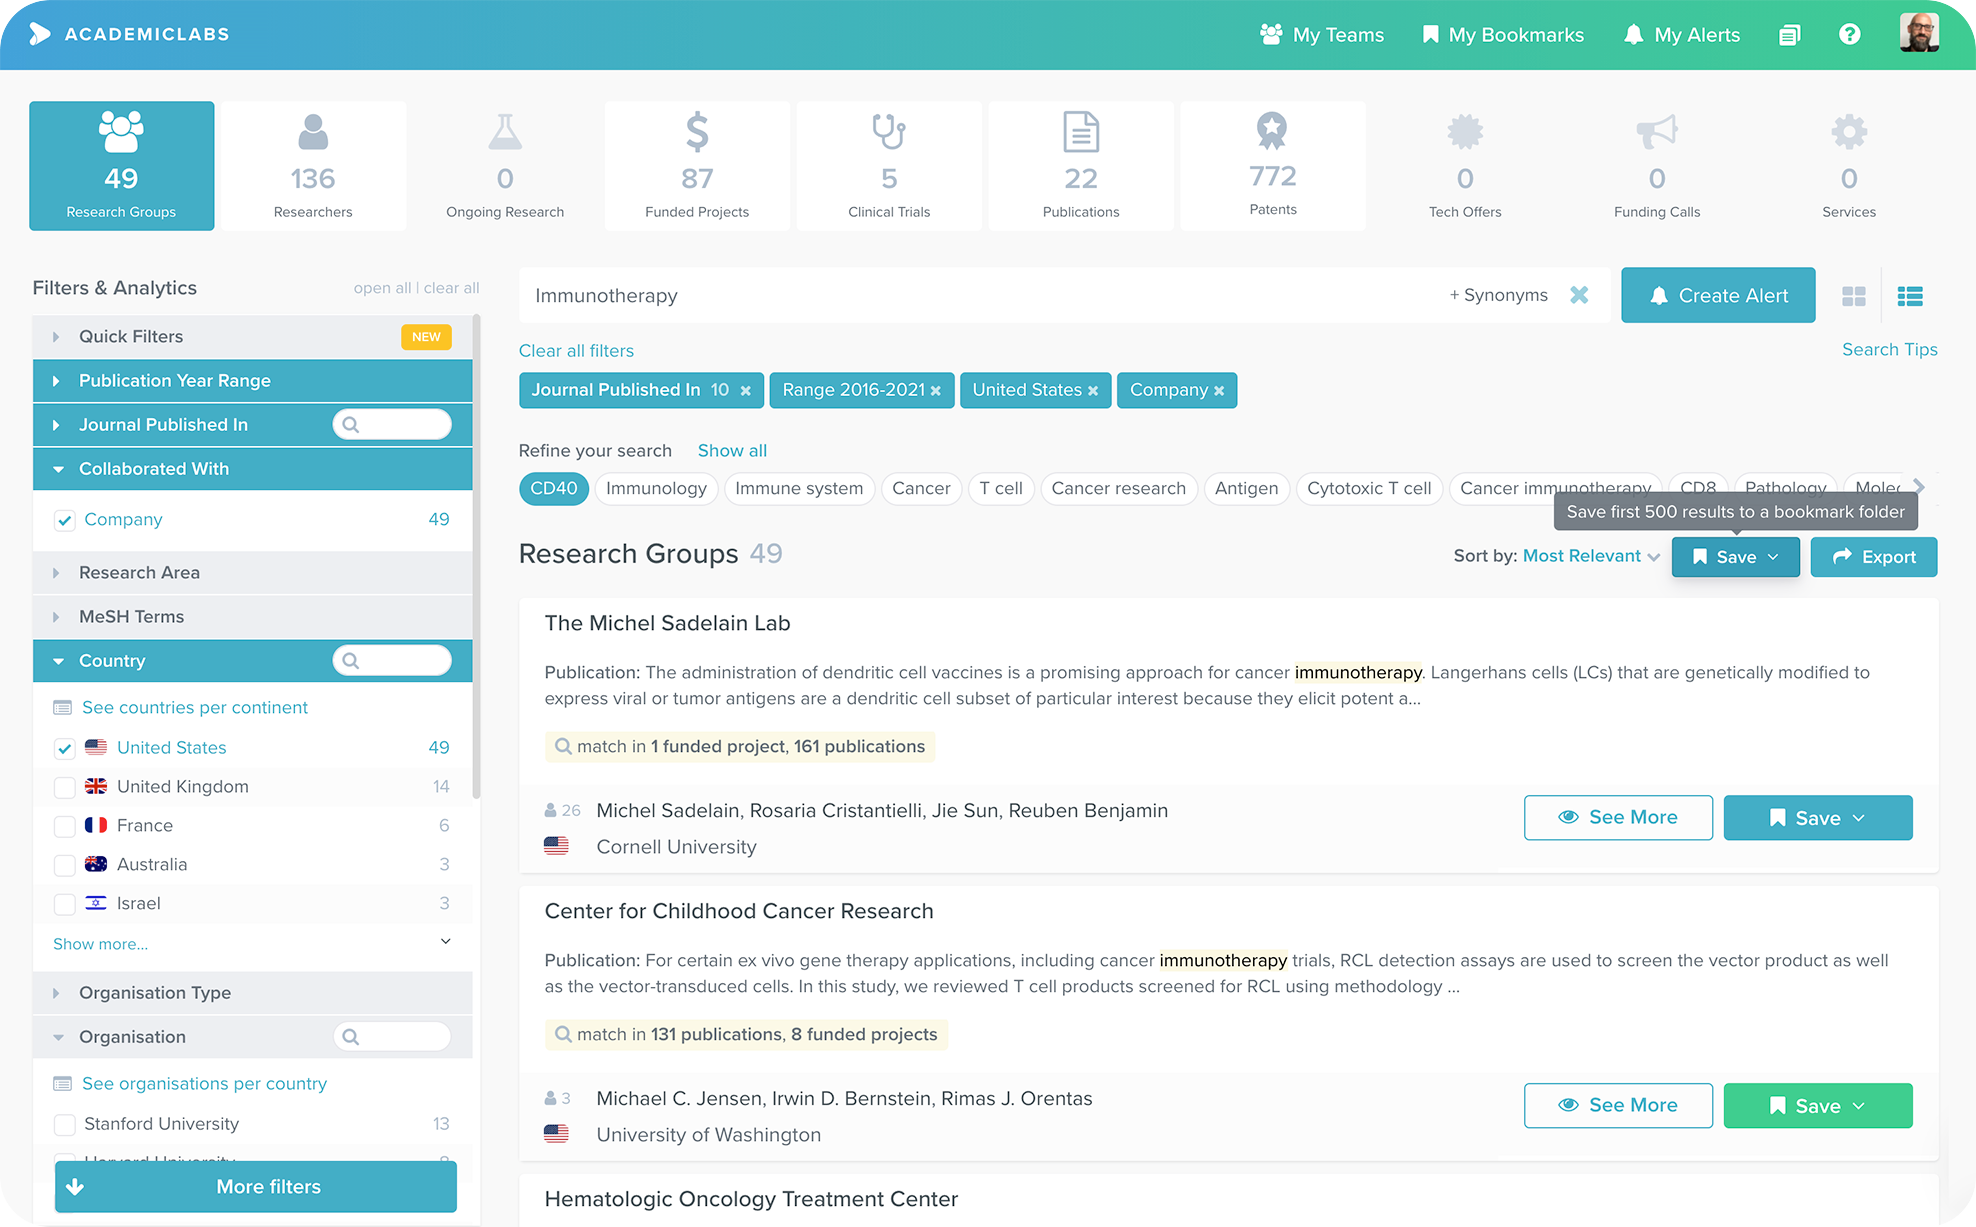 Connect With Context in AcademicLabs